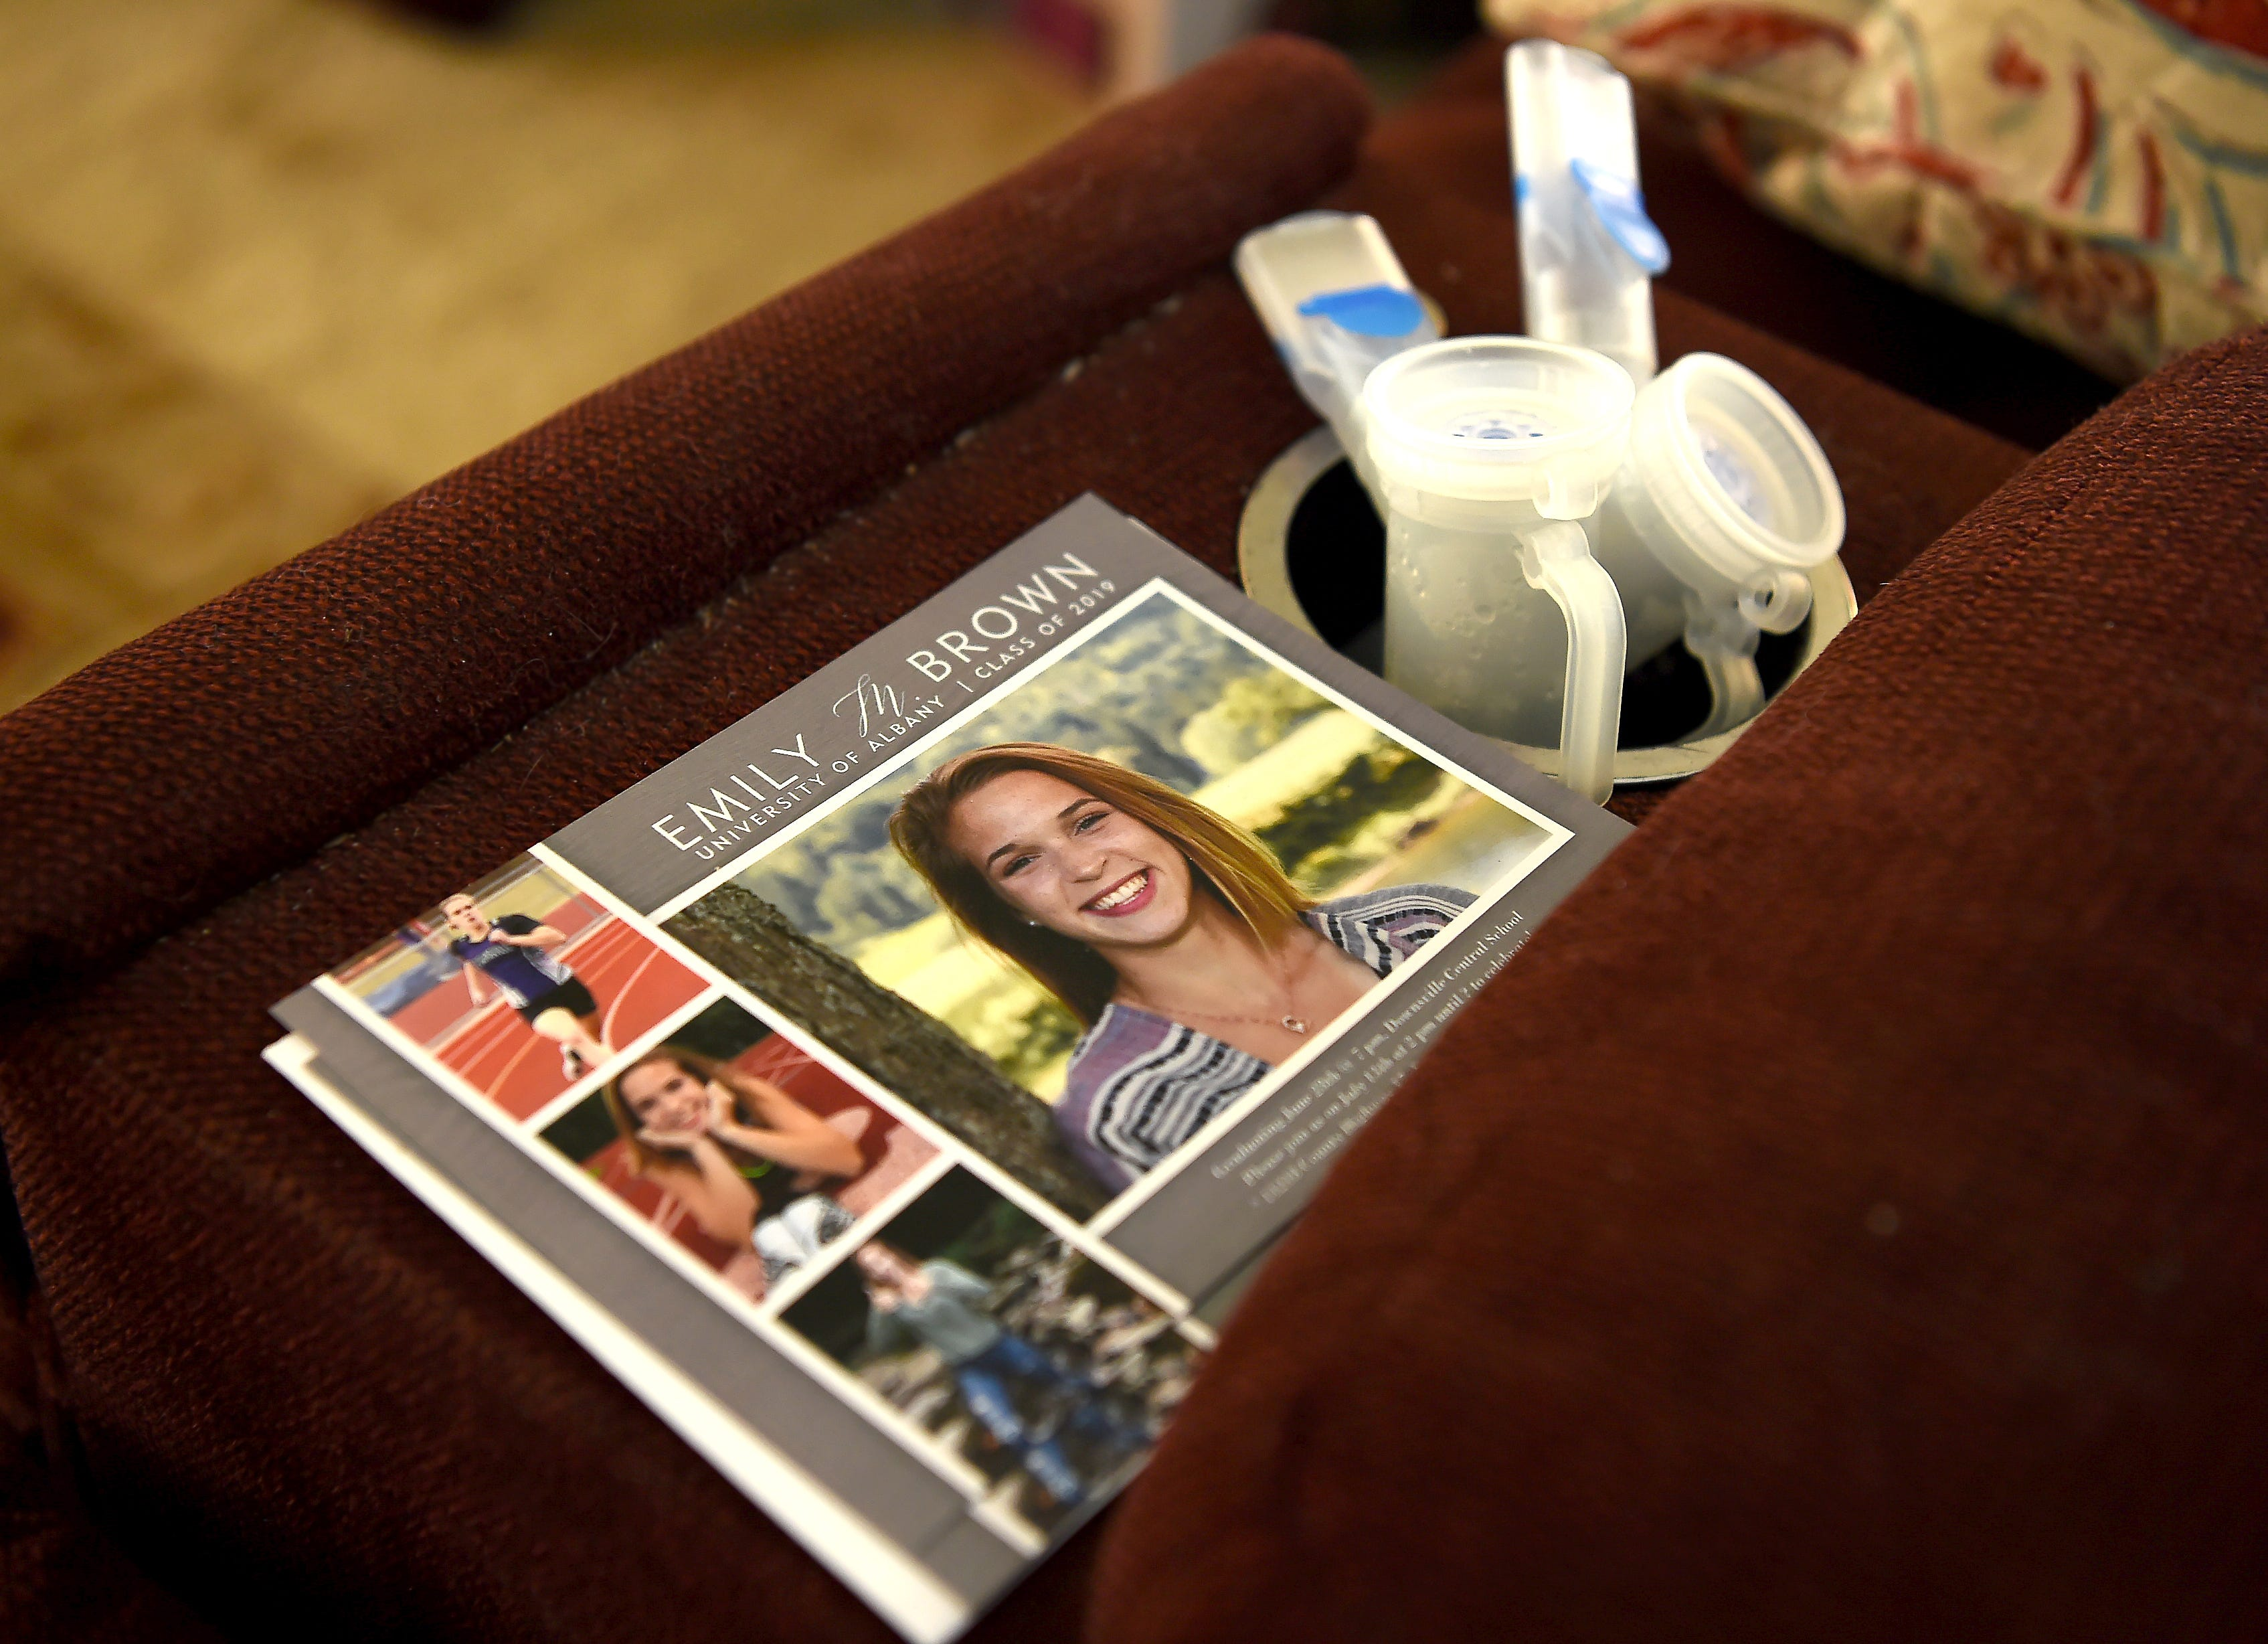 Emily Brown's graduation announcement sits next to a medical device in her East Branch home. Emily, an athlete who was born with cystic fibrosis, will be attending University of Albany in the fall and running on the track team. Friday, June 28, 2019.